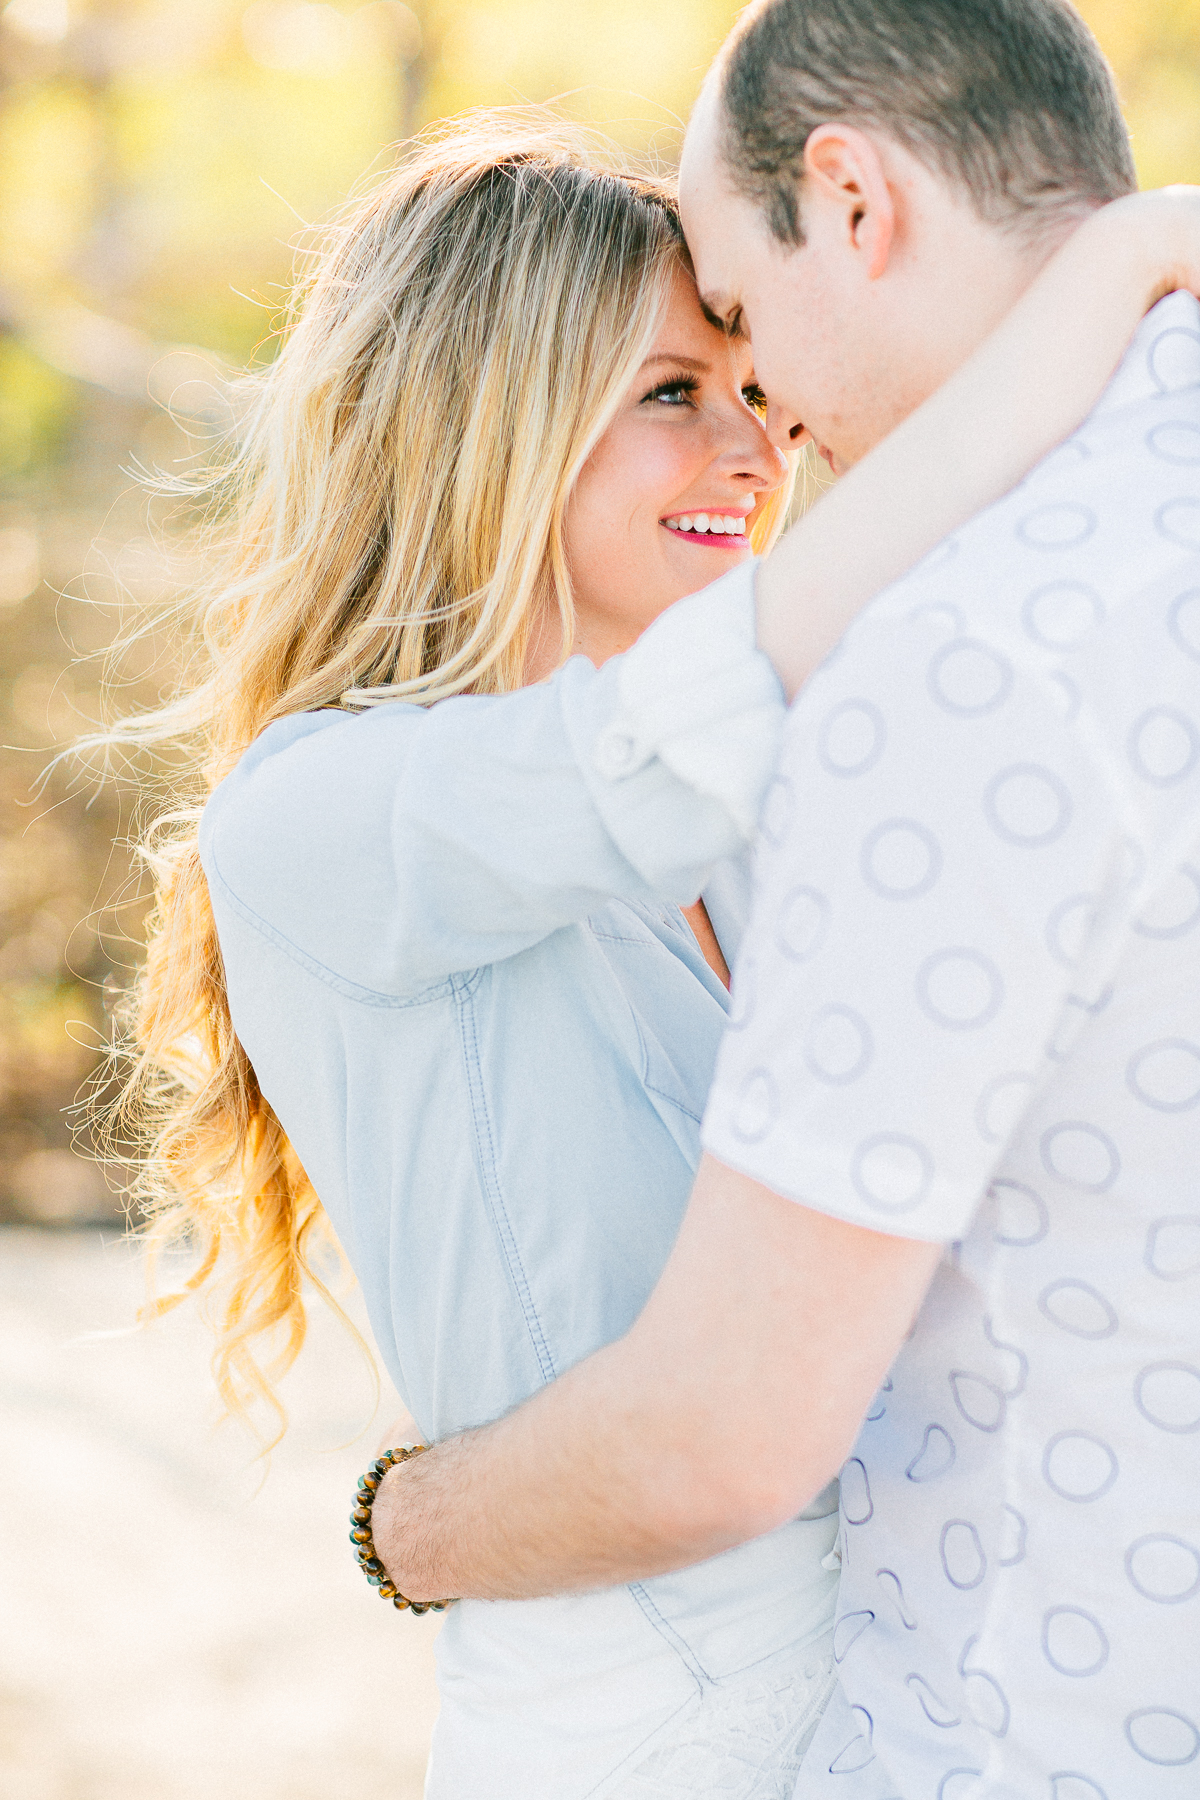 sharrock_engagements-0933.jpg